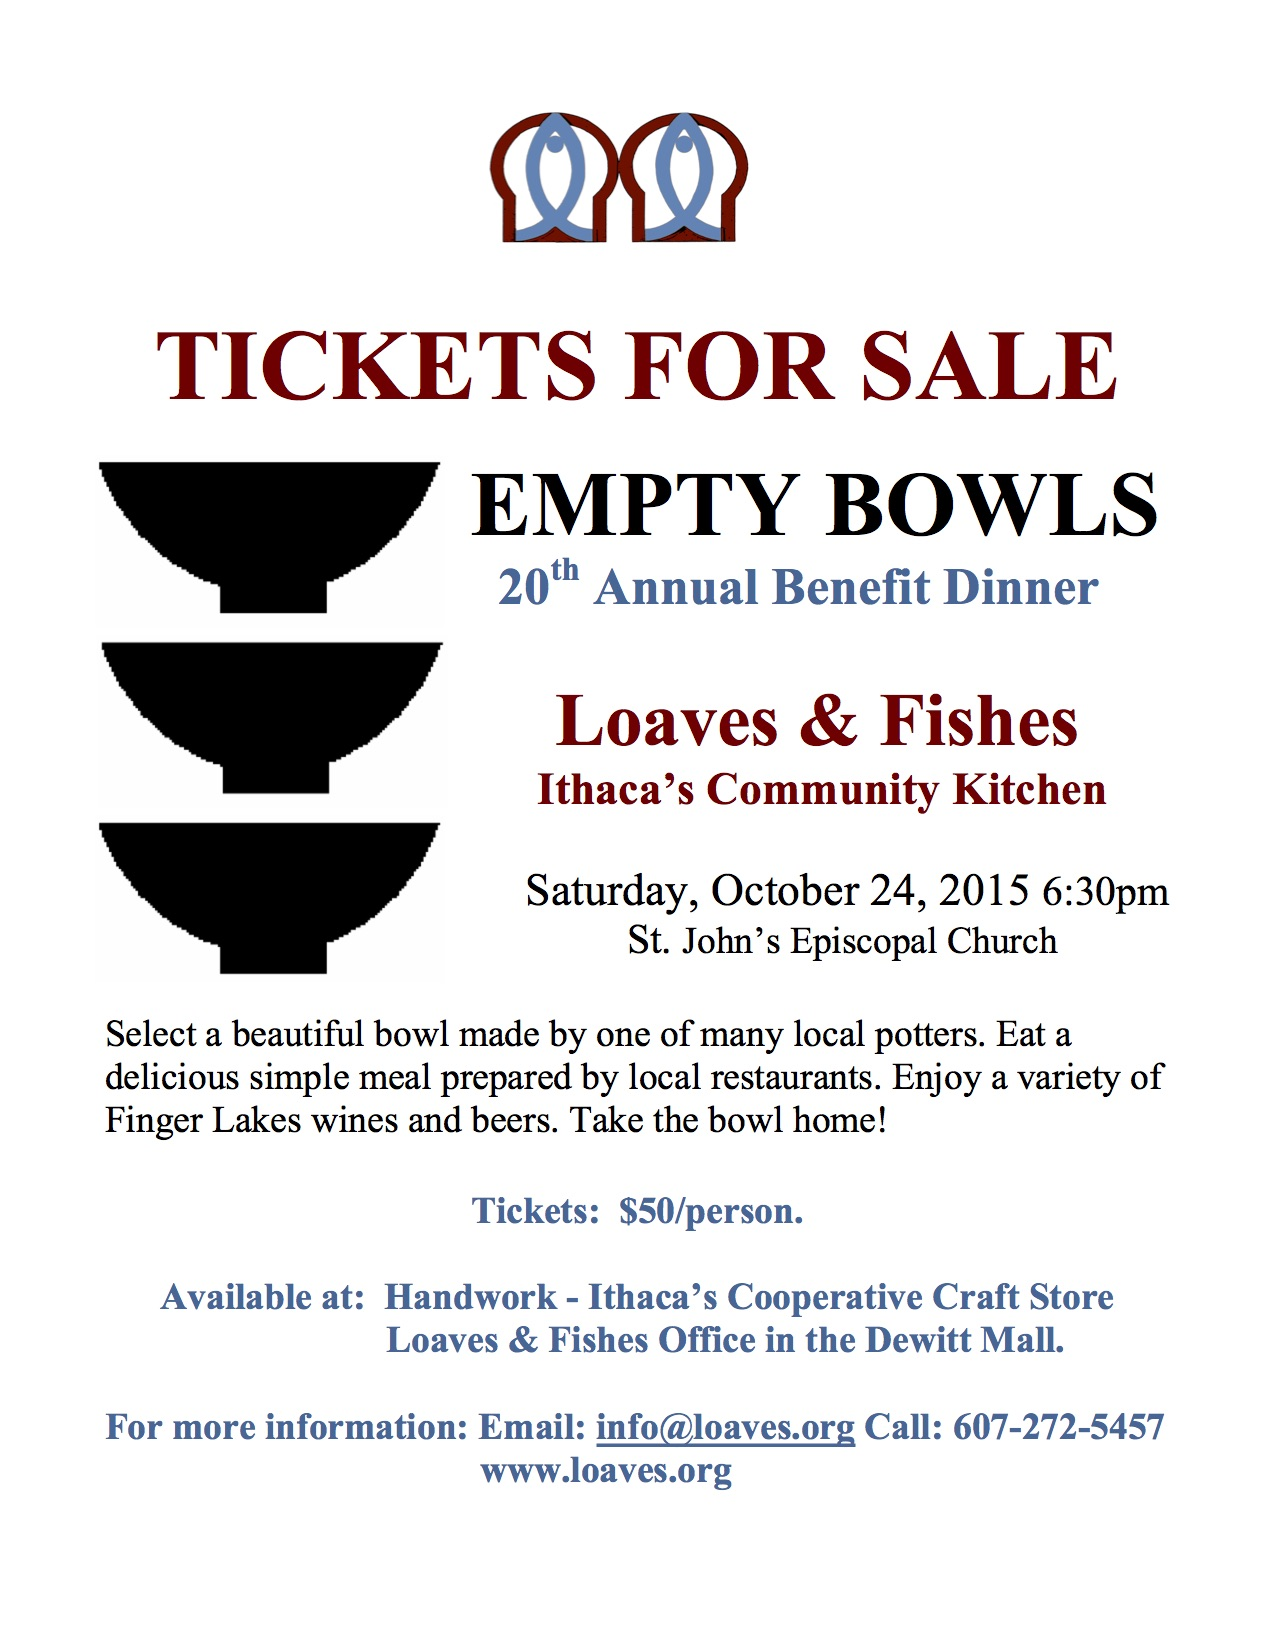 loaves fishes th annual empty bowls benefit dinner st mtbowls